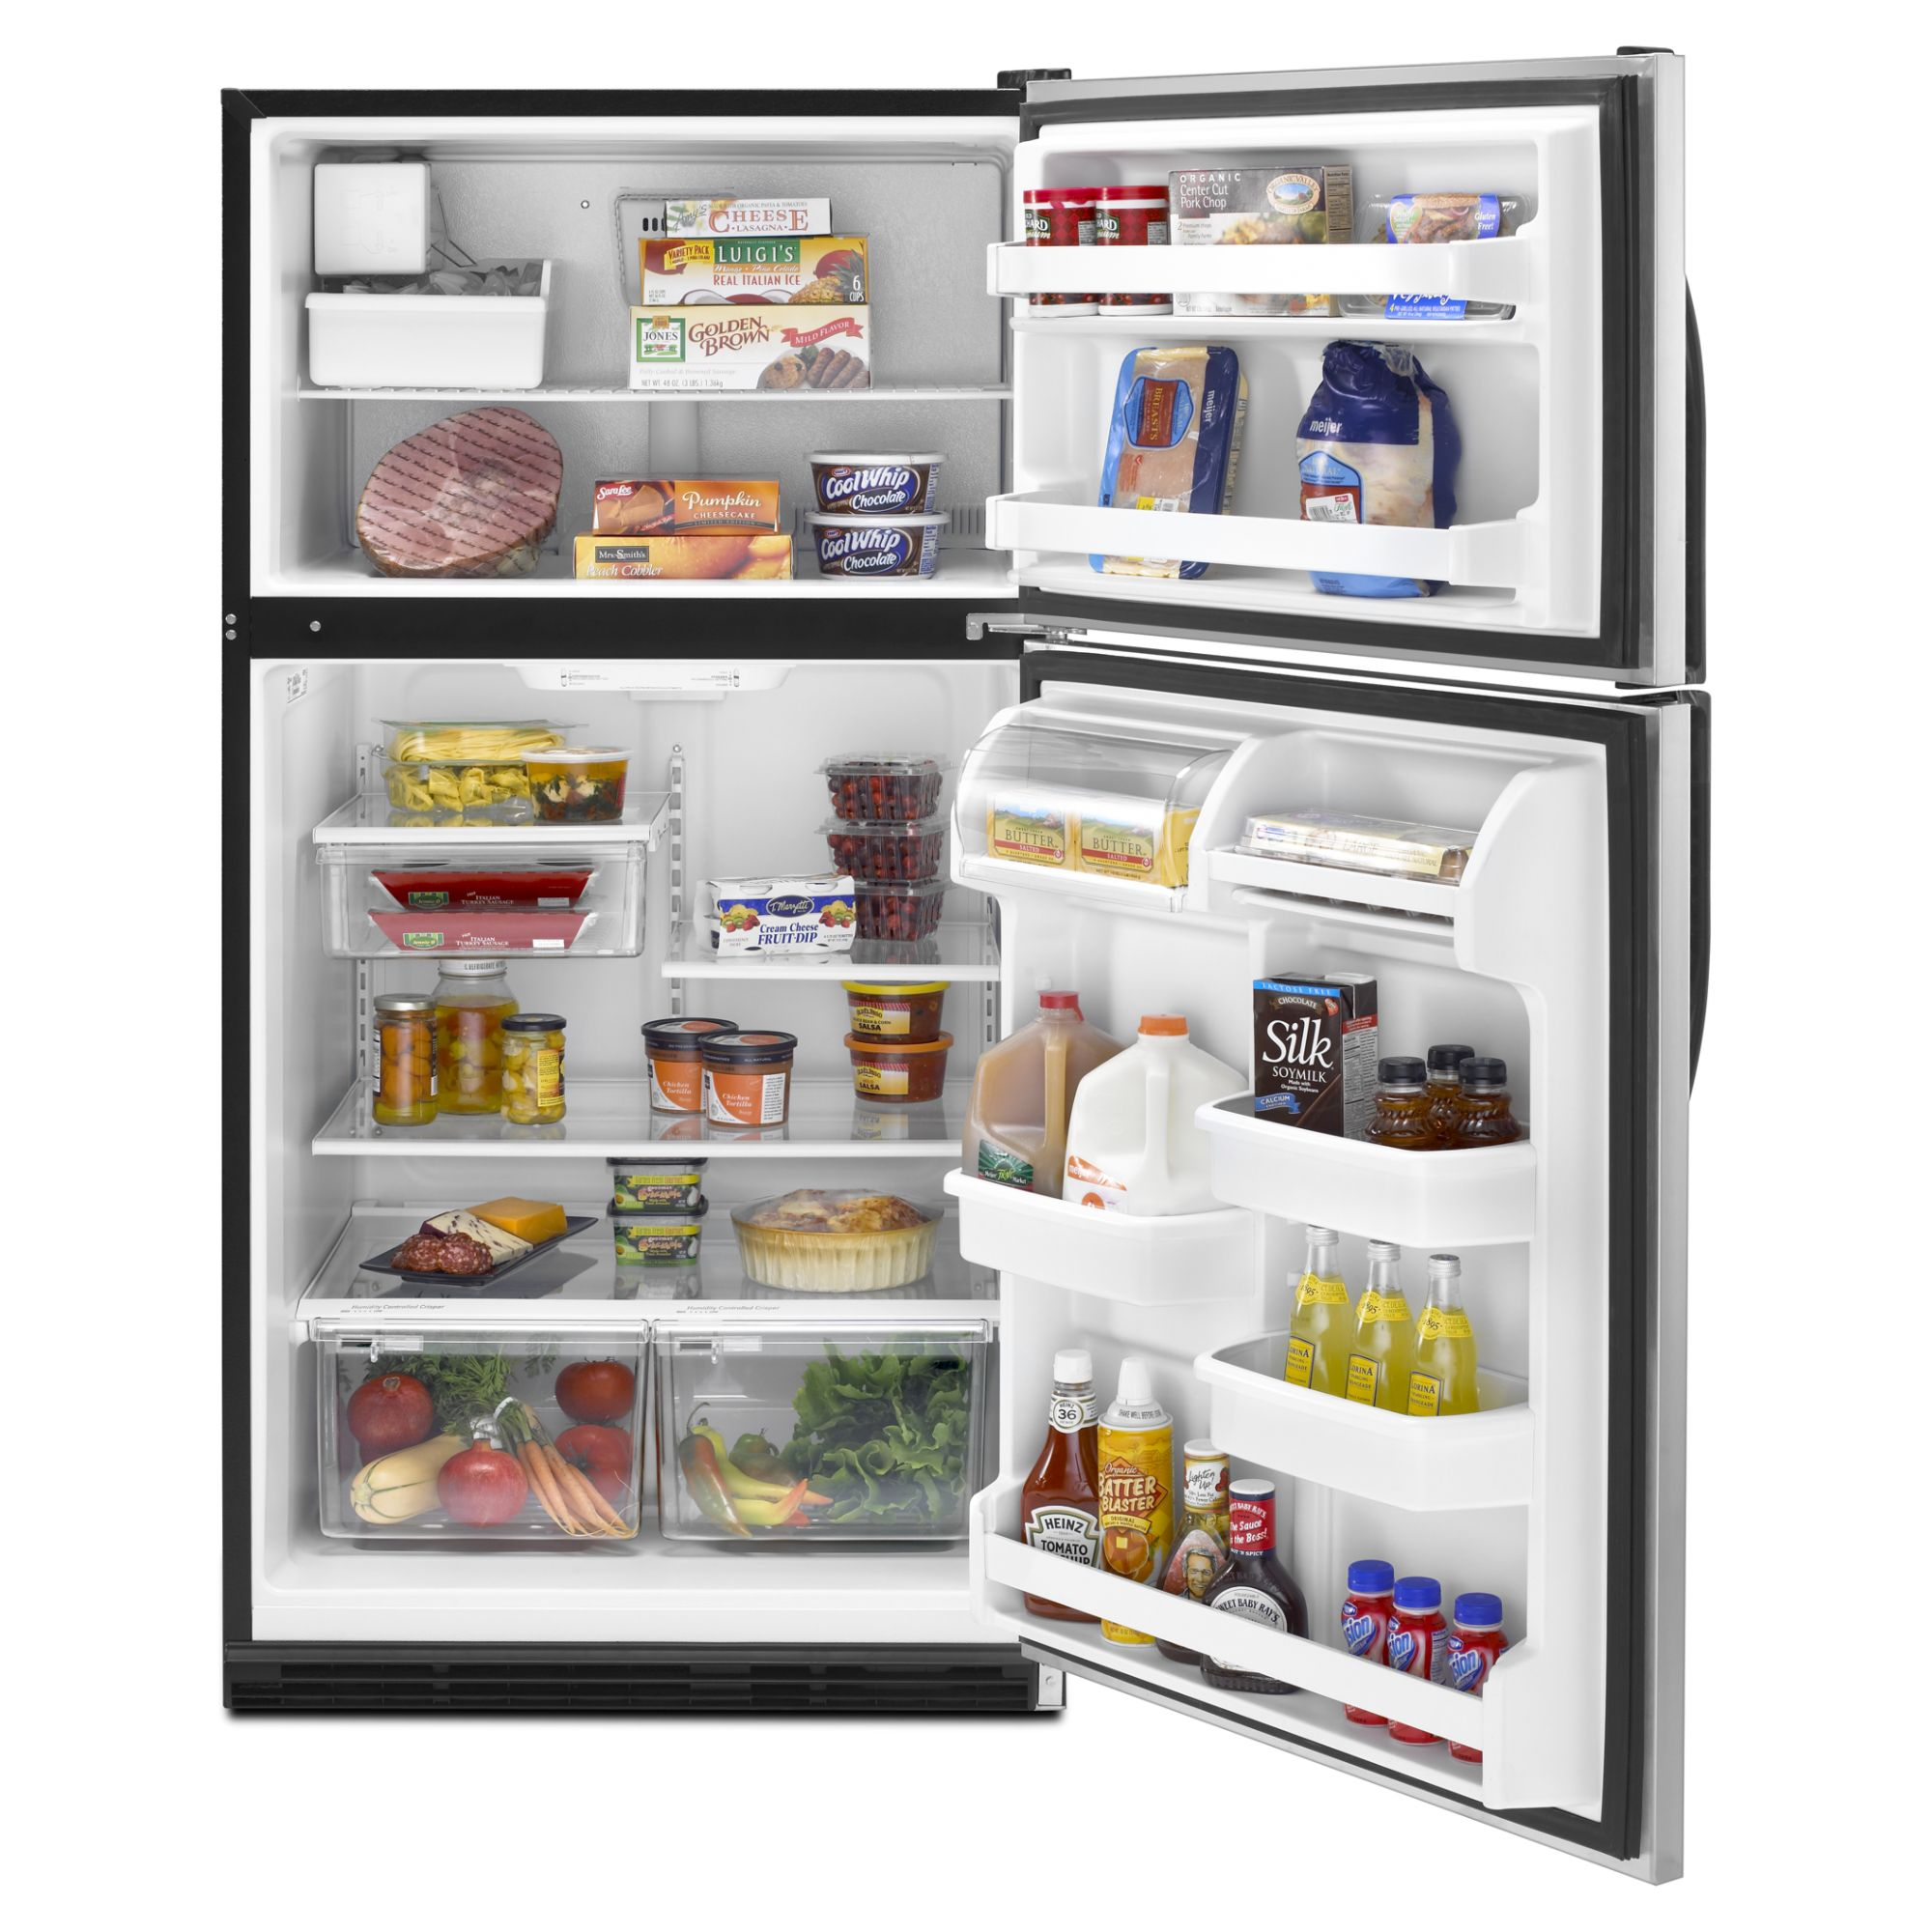 Whirlpool 20.9 cu. ft. Top-Freezer Refrigerator - Stainless Steel